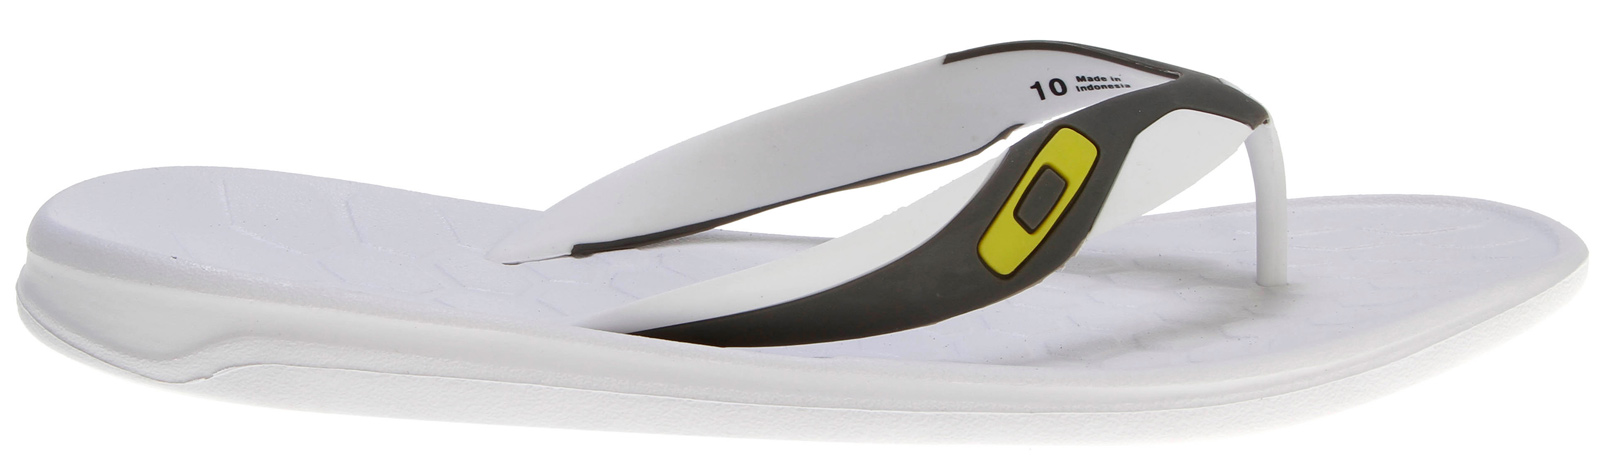 Surf Key Features of the Oakley Operative 2 Sandals: Upper: 2 color injection molded TPU strap with raised Oakley icon Footbed/Midsole: Compression molded EVA chassis Outsole: High traction, high abrasion Unobtanium® rubber insert outsole - $21.95